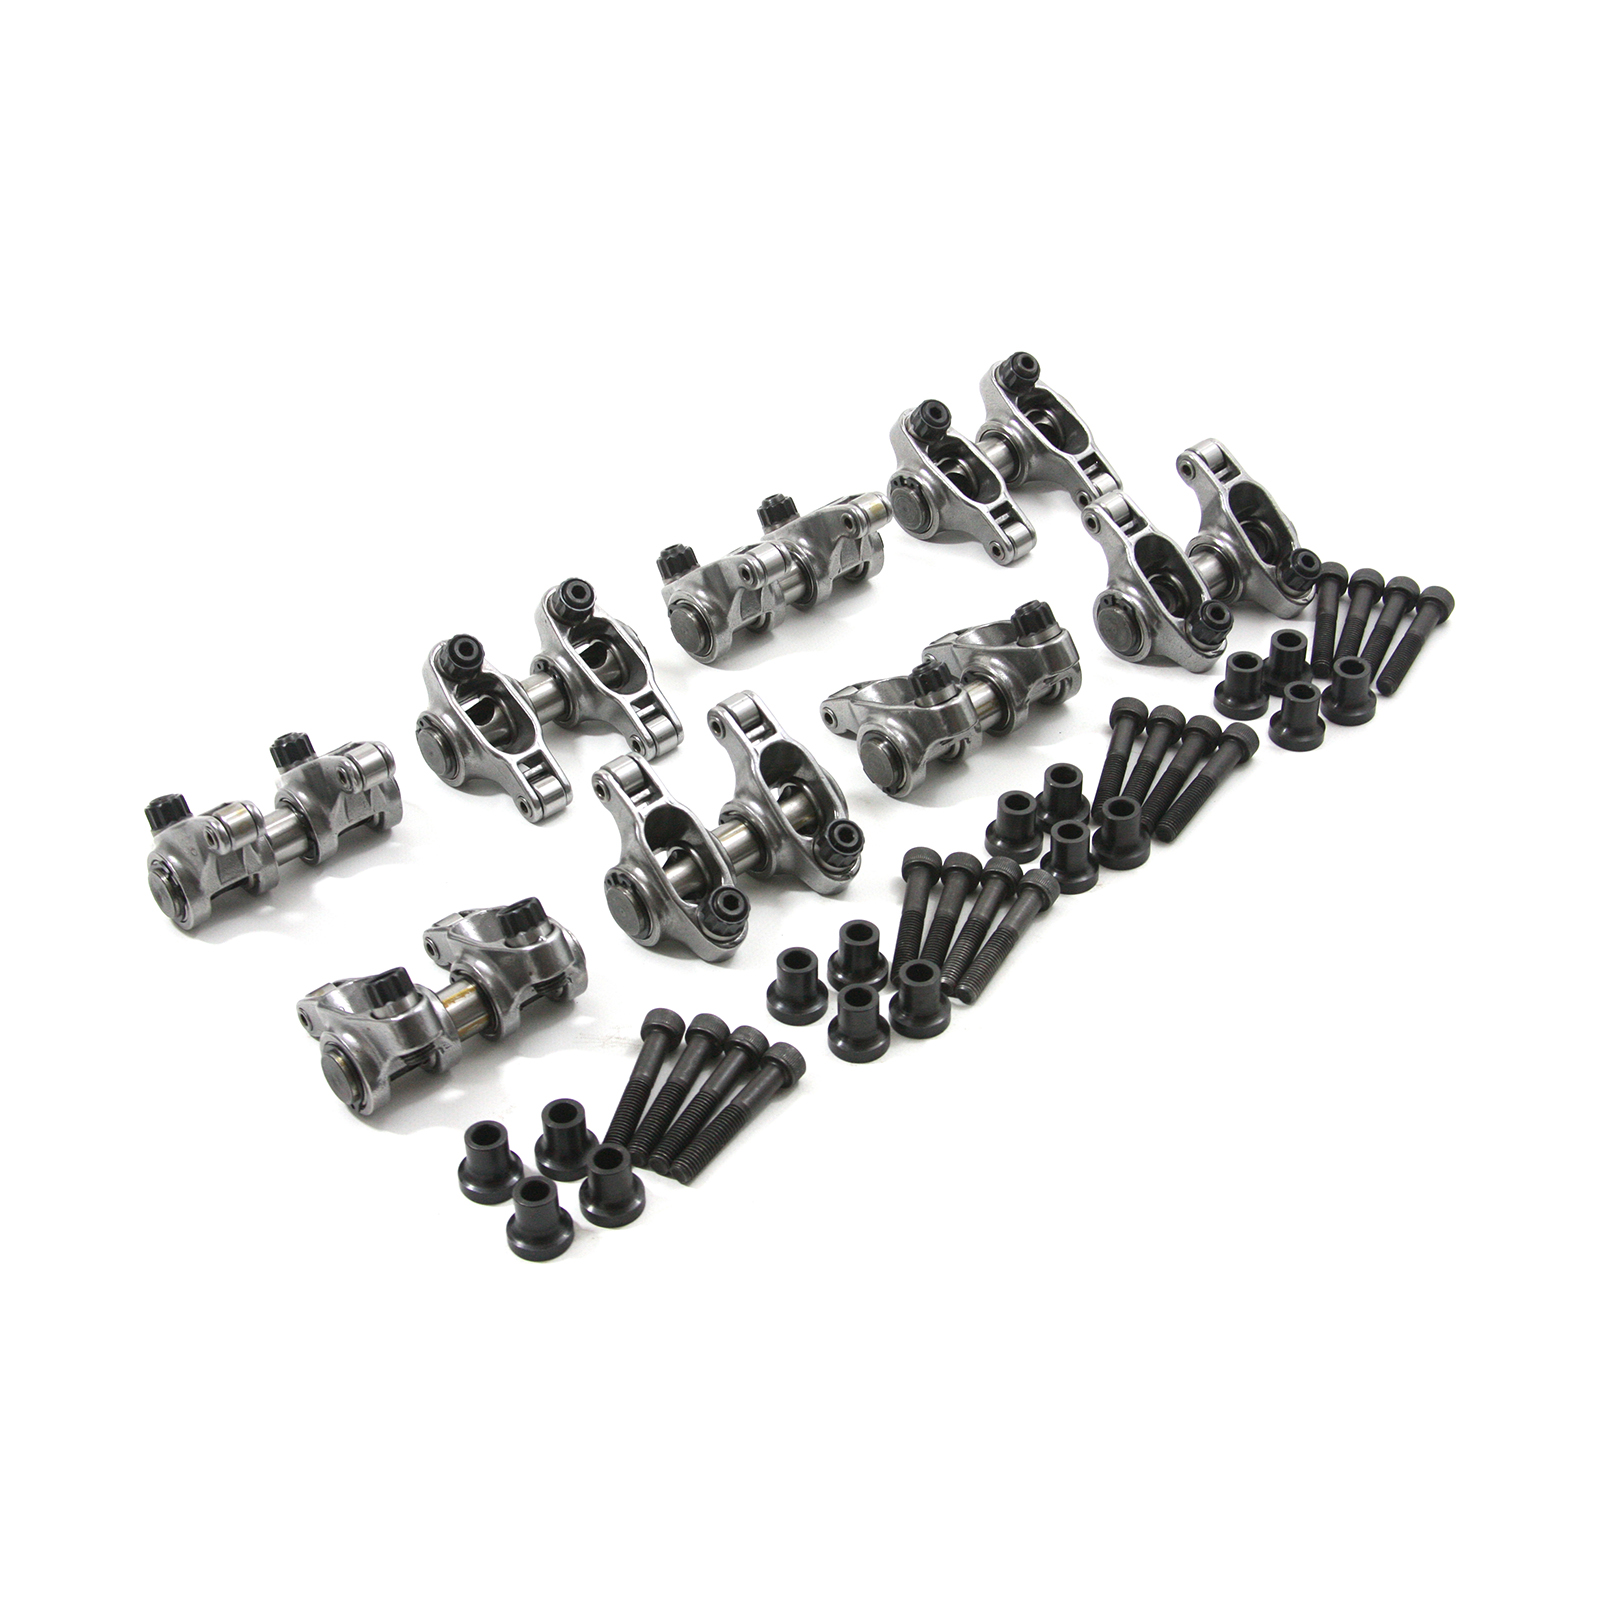 Chevy LS 1.7 Ratio Adjustable Stainless Steel Roller